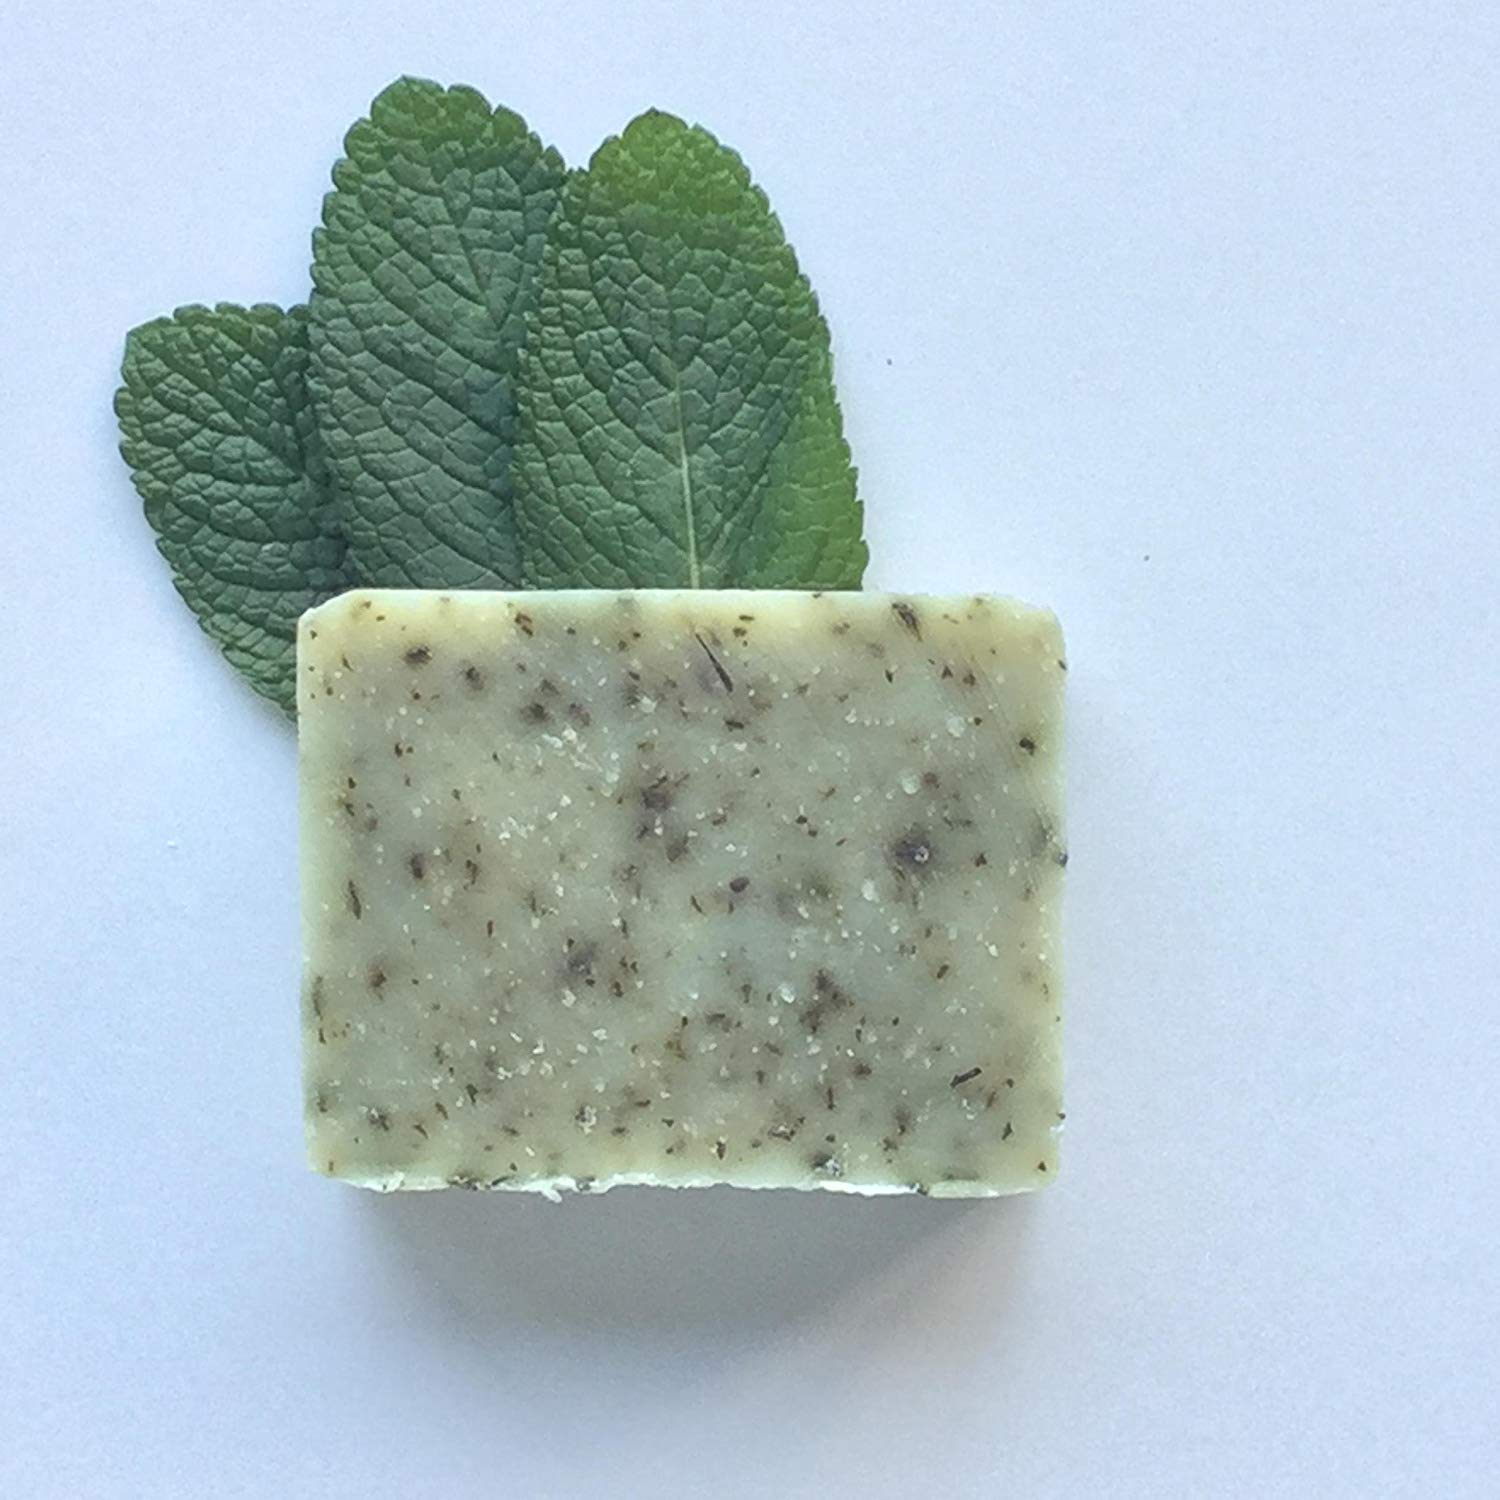 Refreshmint Soap, Handcrafted, Organic Ingredients, 100% Natural, Vegan, Peppermint, Essential Oils, Handmade in small batches by The Willow Grove